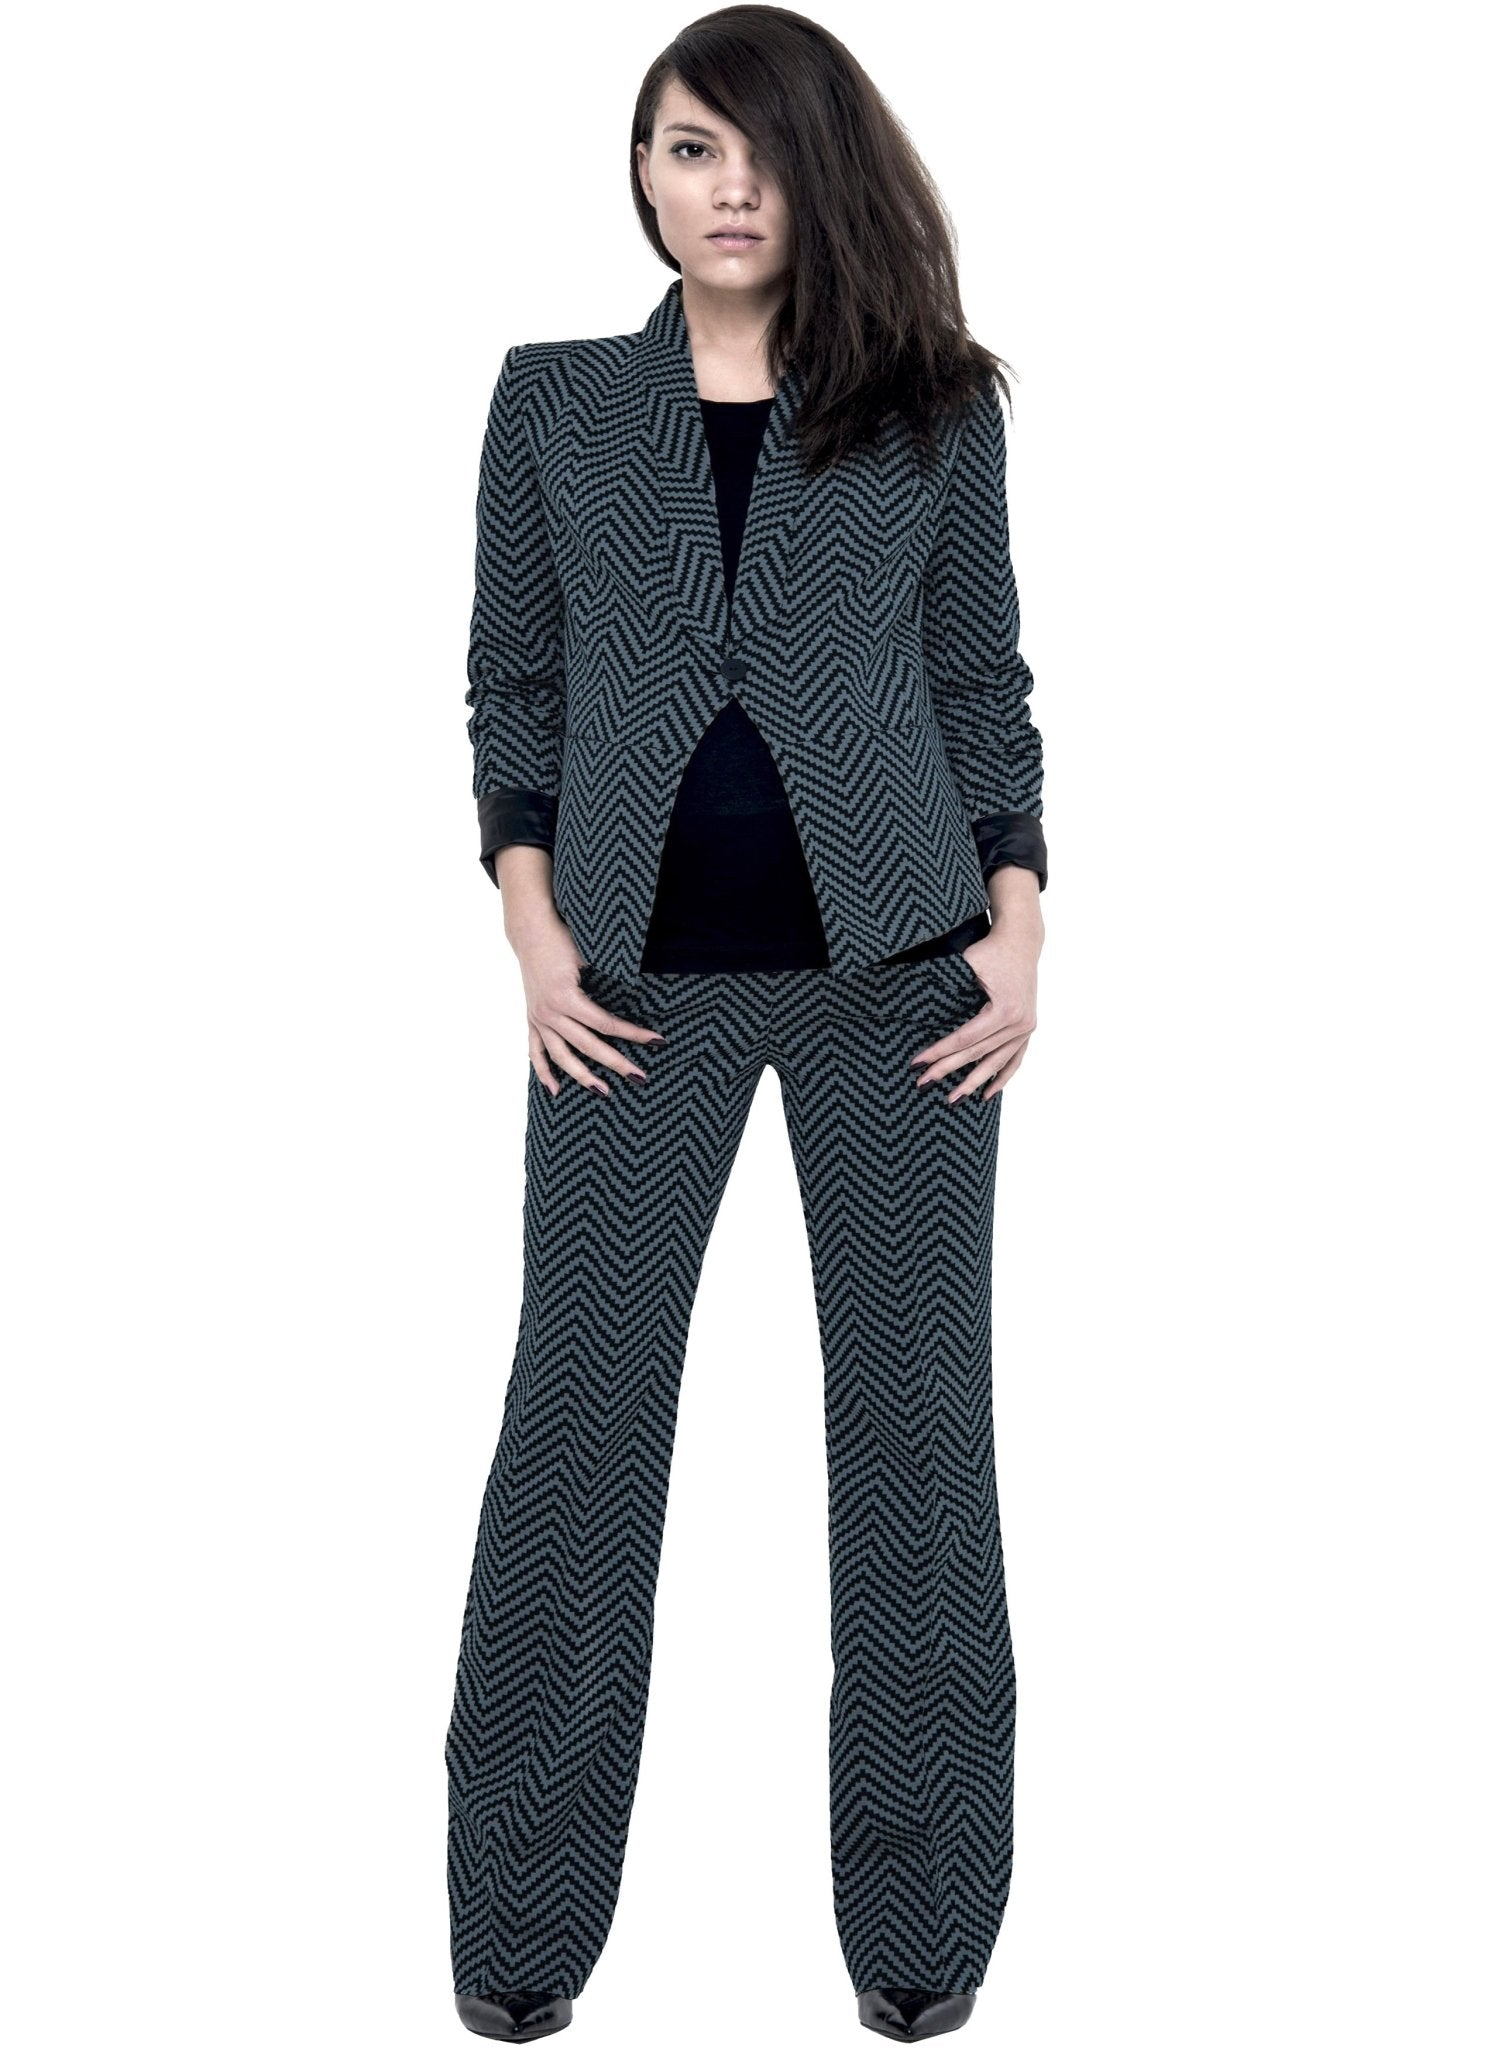 Maternity 2-Piece Suit - Green Check - Mums and Bumps